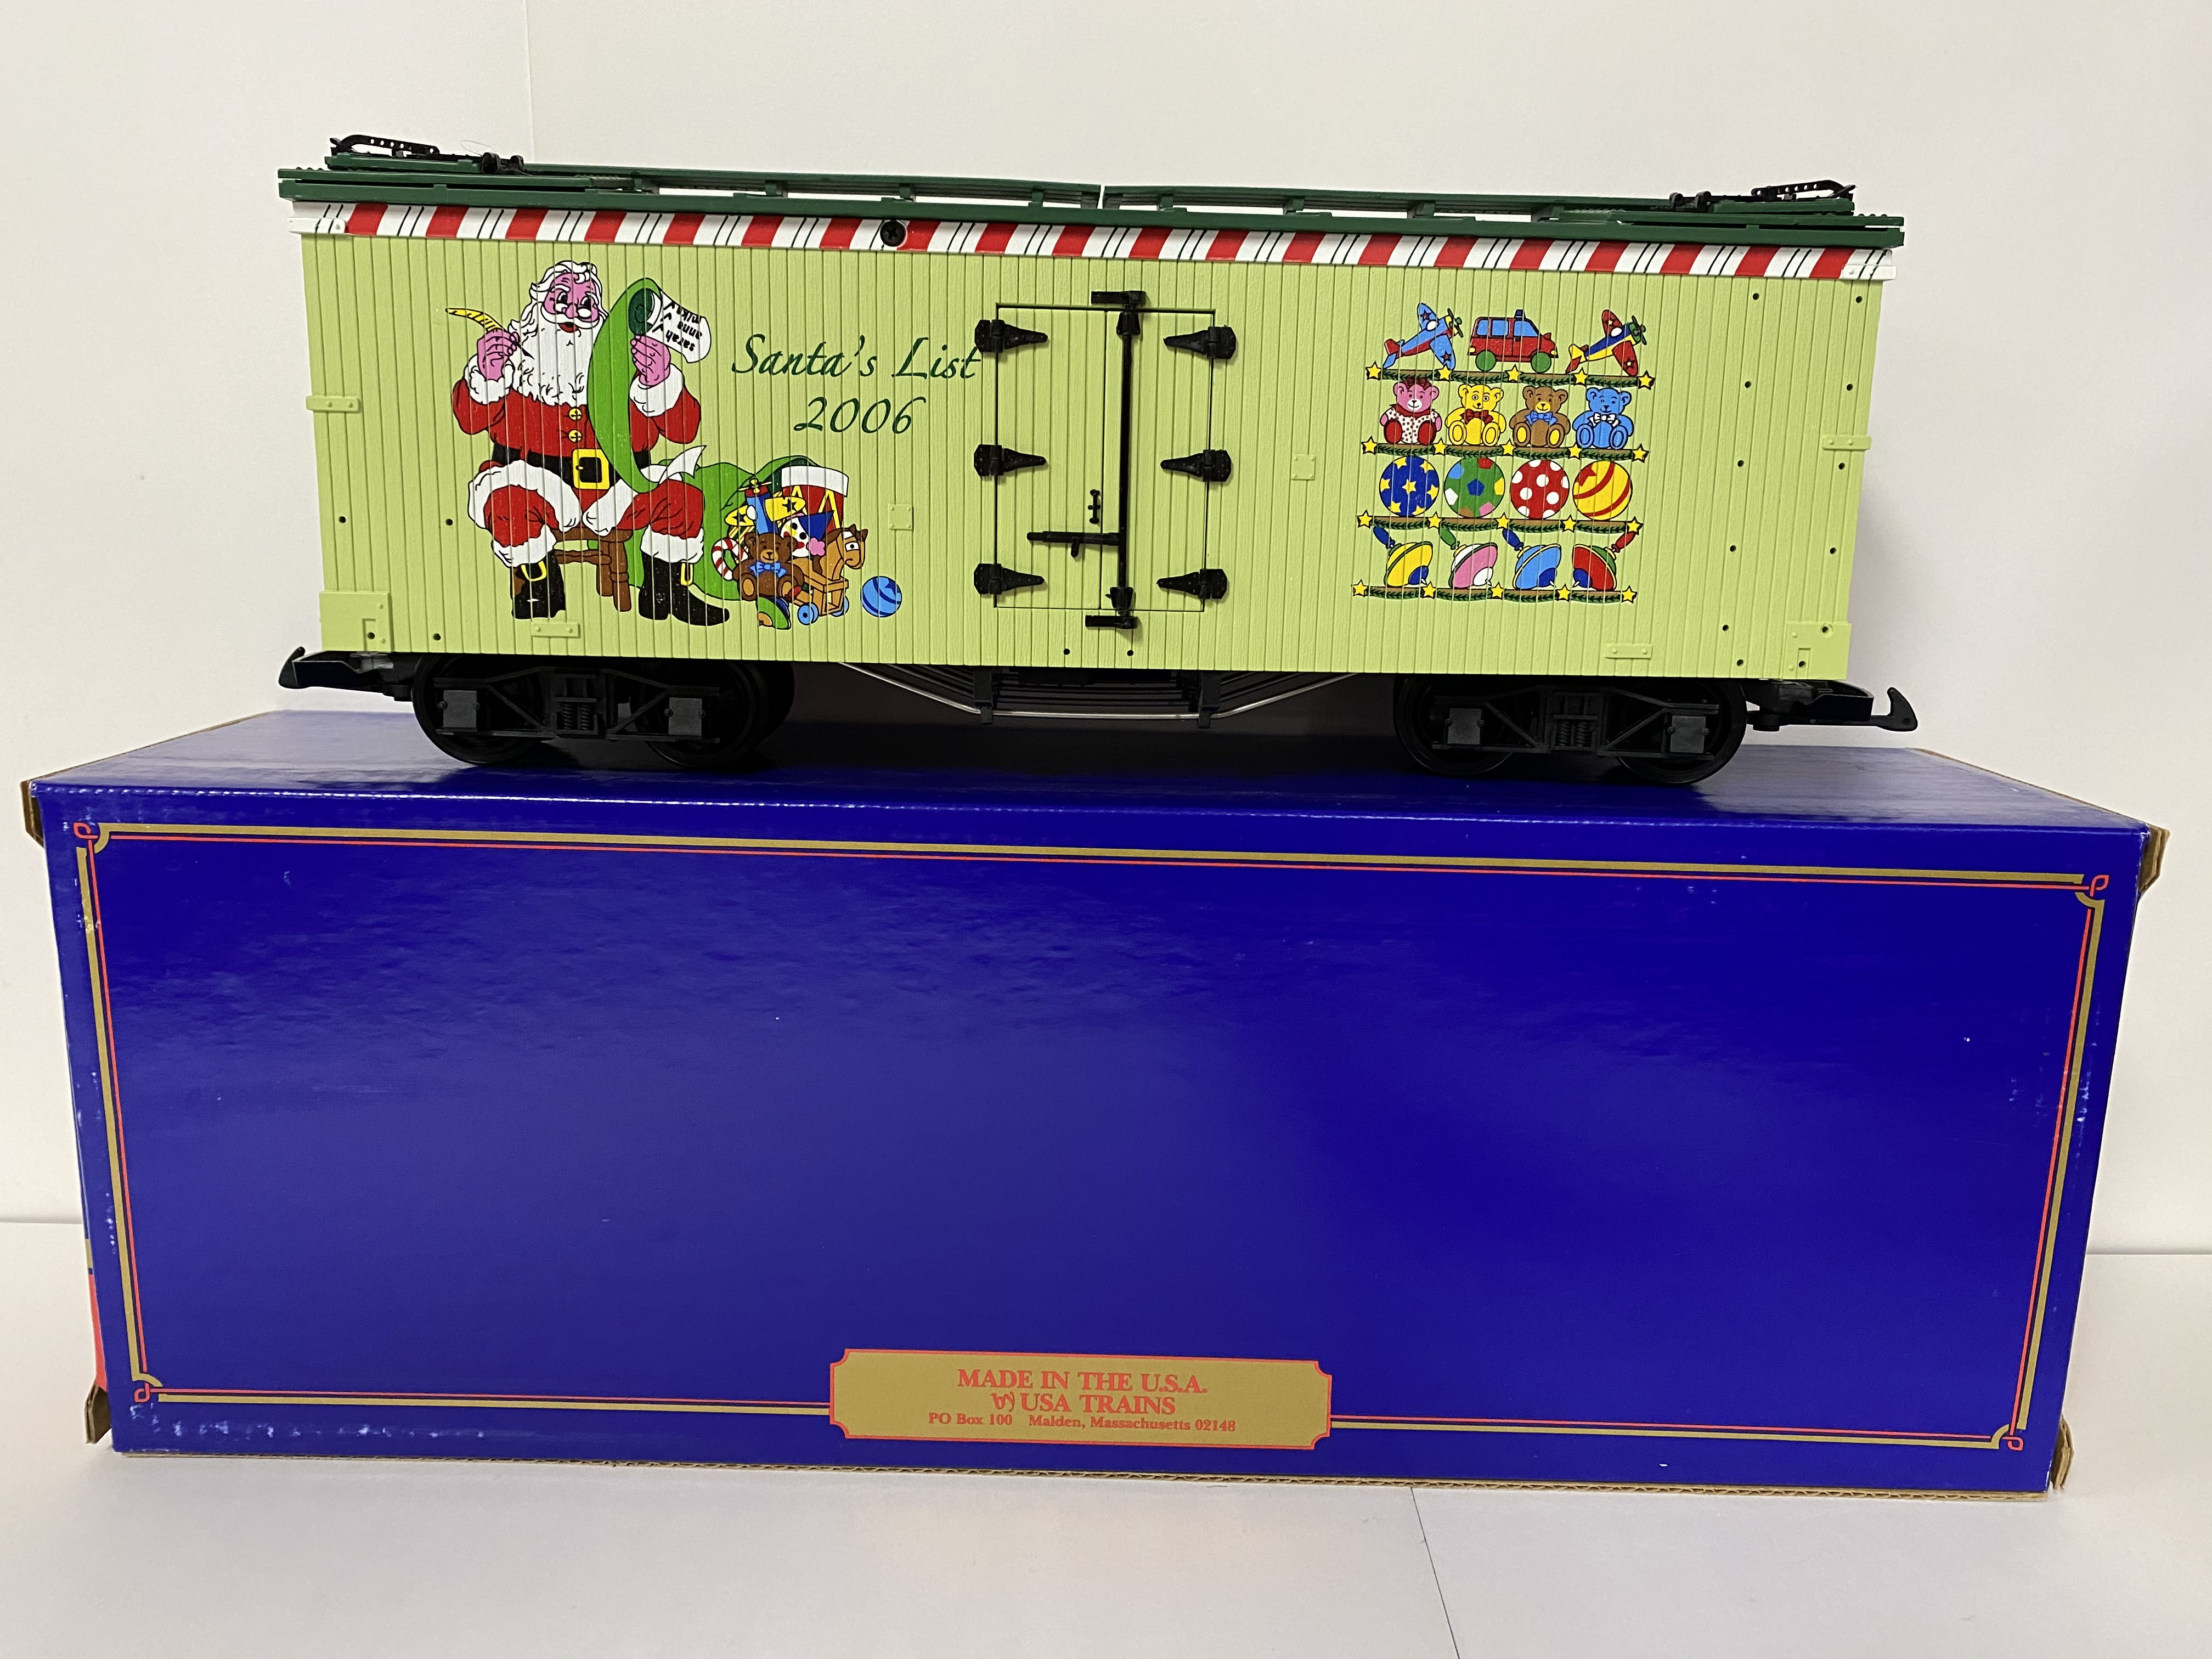 2006 Christmas Reefer (USA Trains 13024)